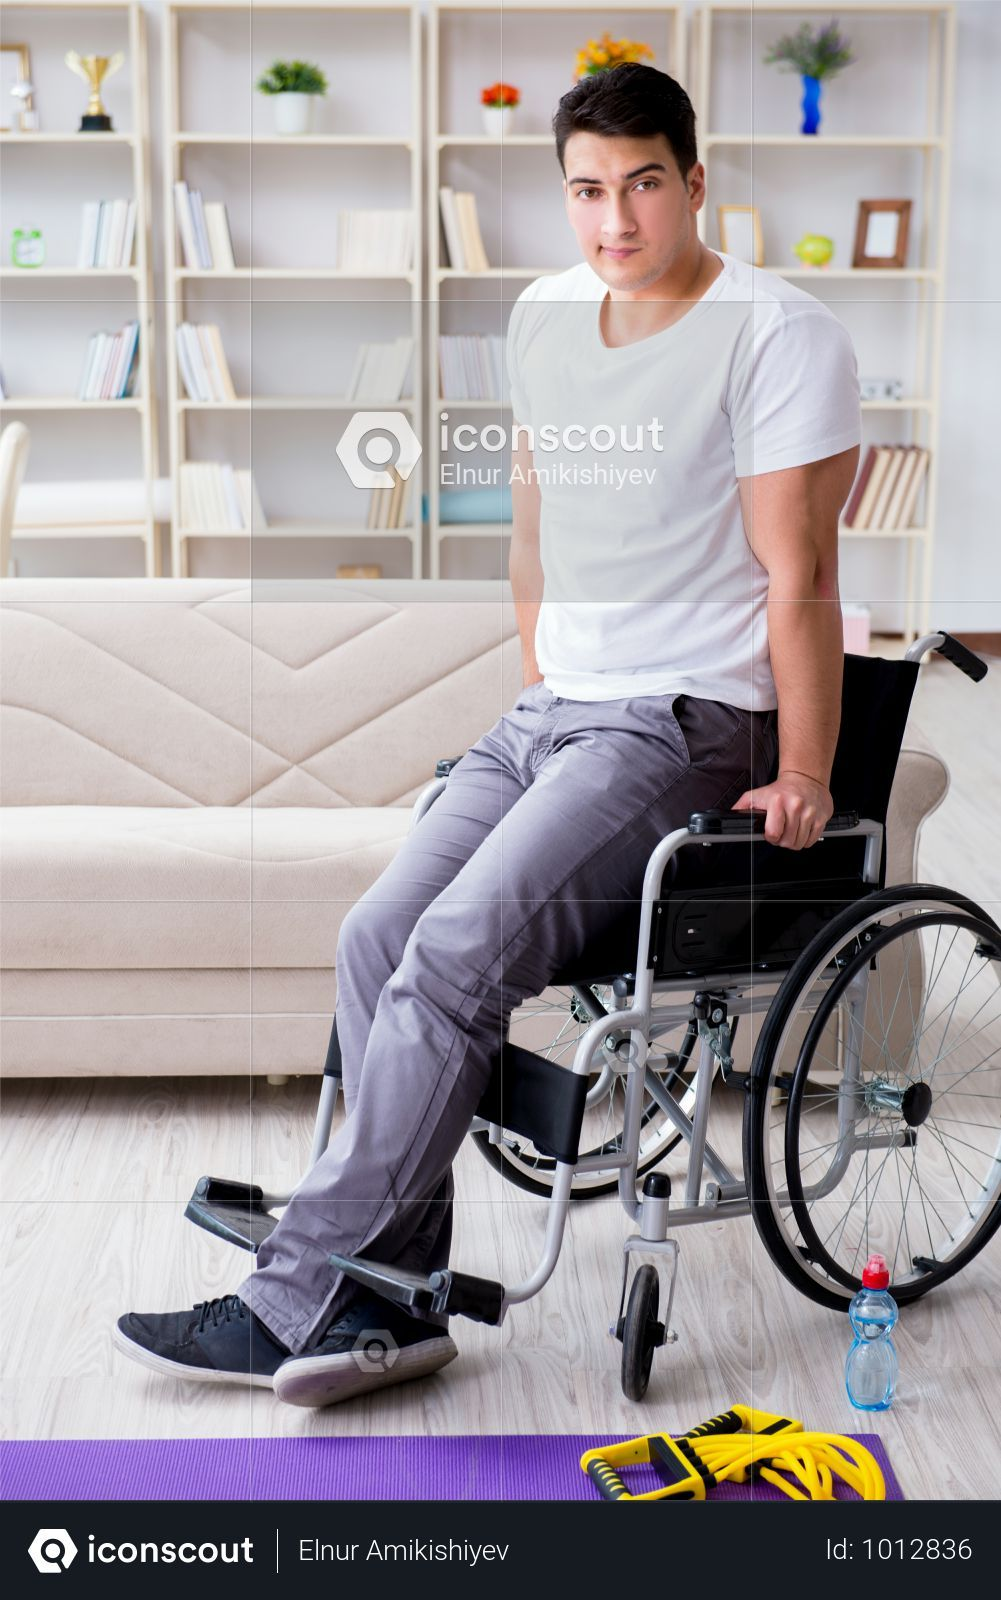 Premium Disabled Man Recovering From Injury At Home Photo Download In Png Jpg Format Home Photo Injury Medical Photos